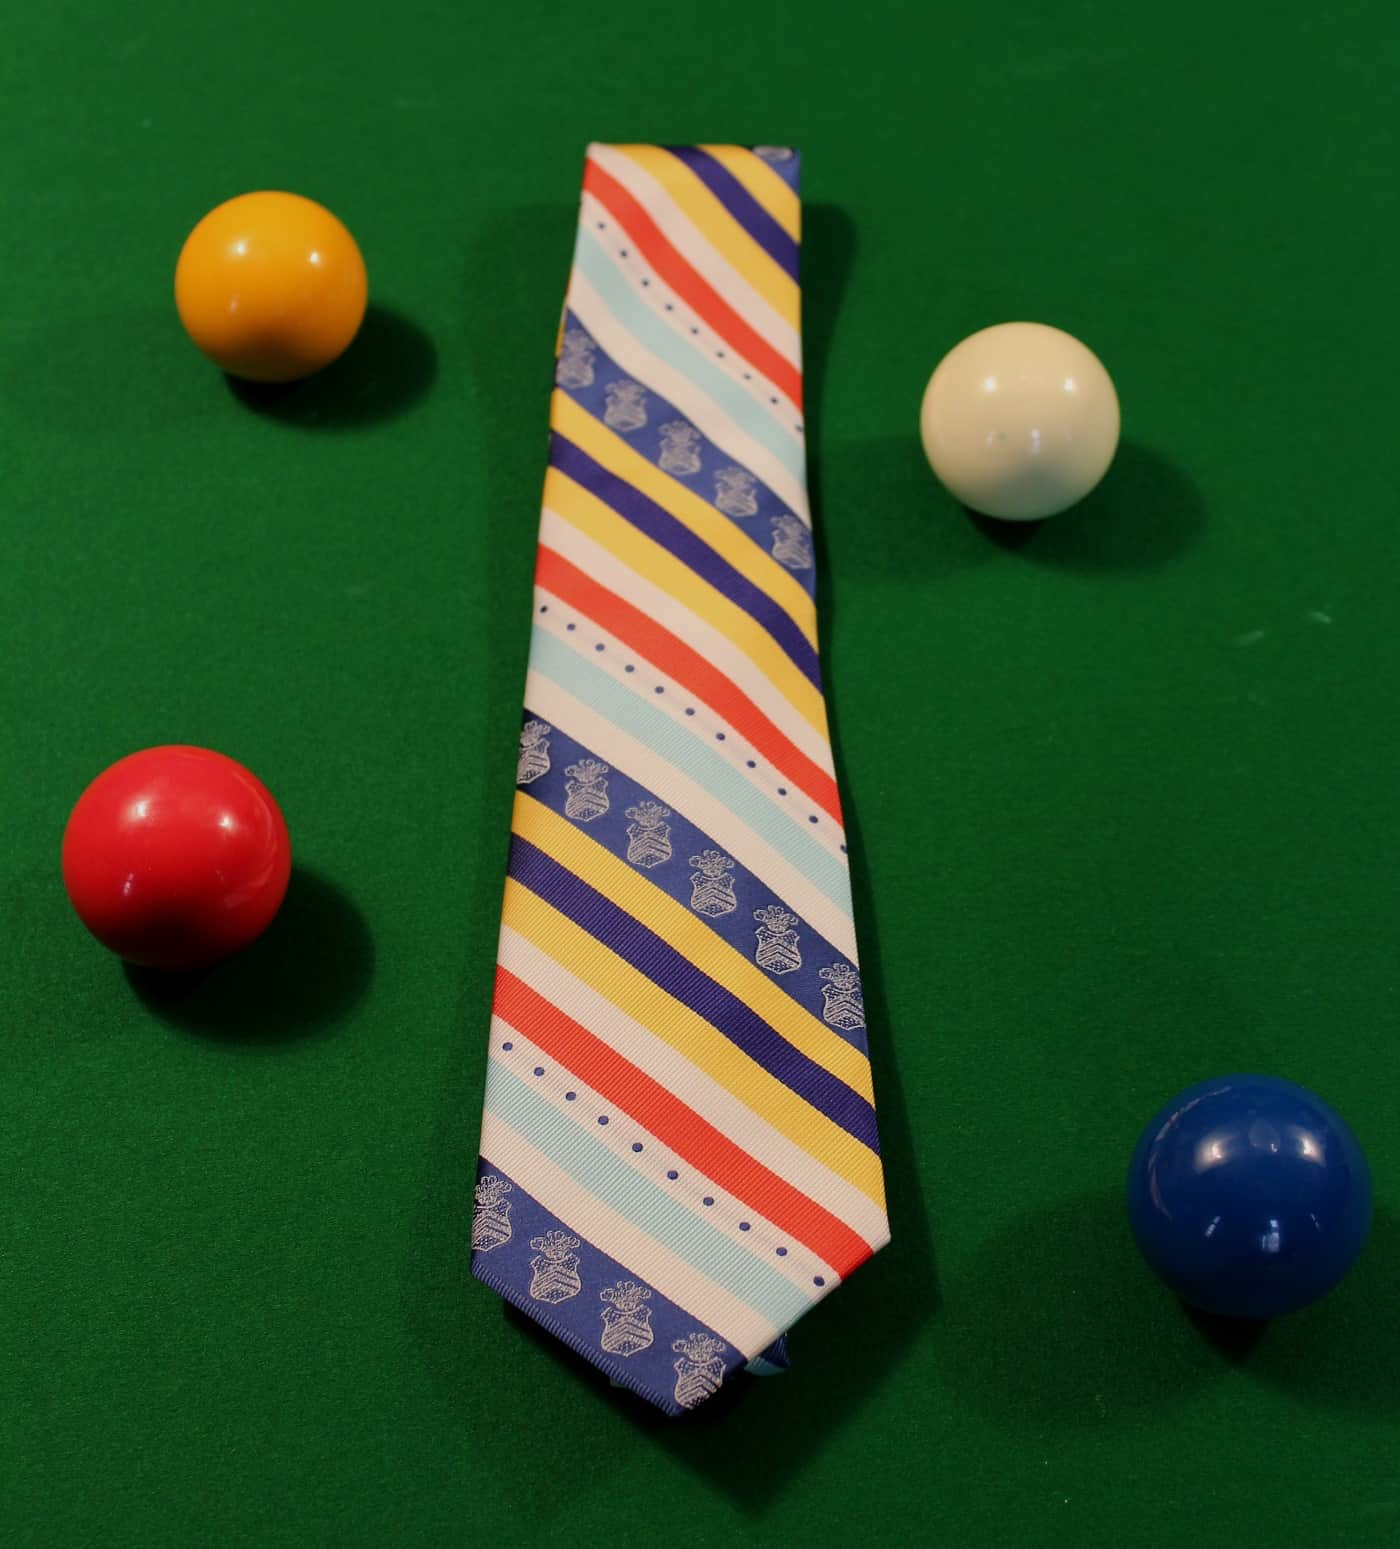 4 Clubs Tie - £27.50